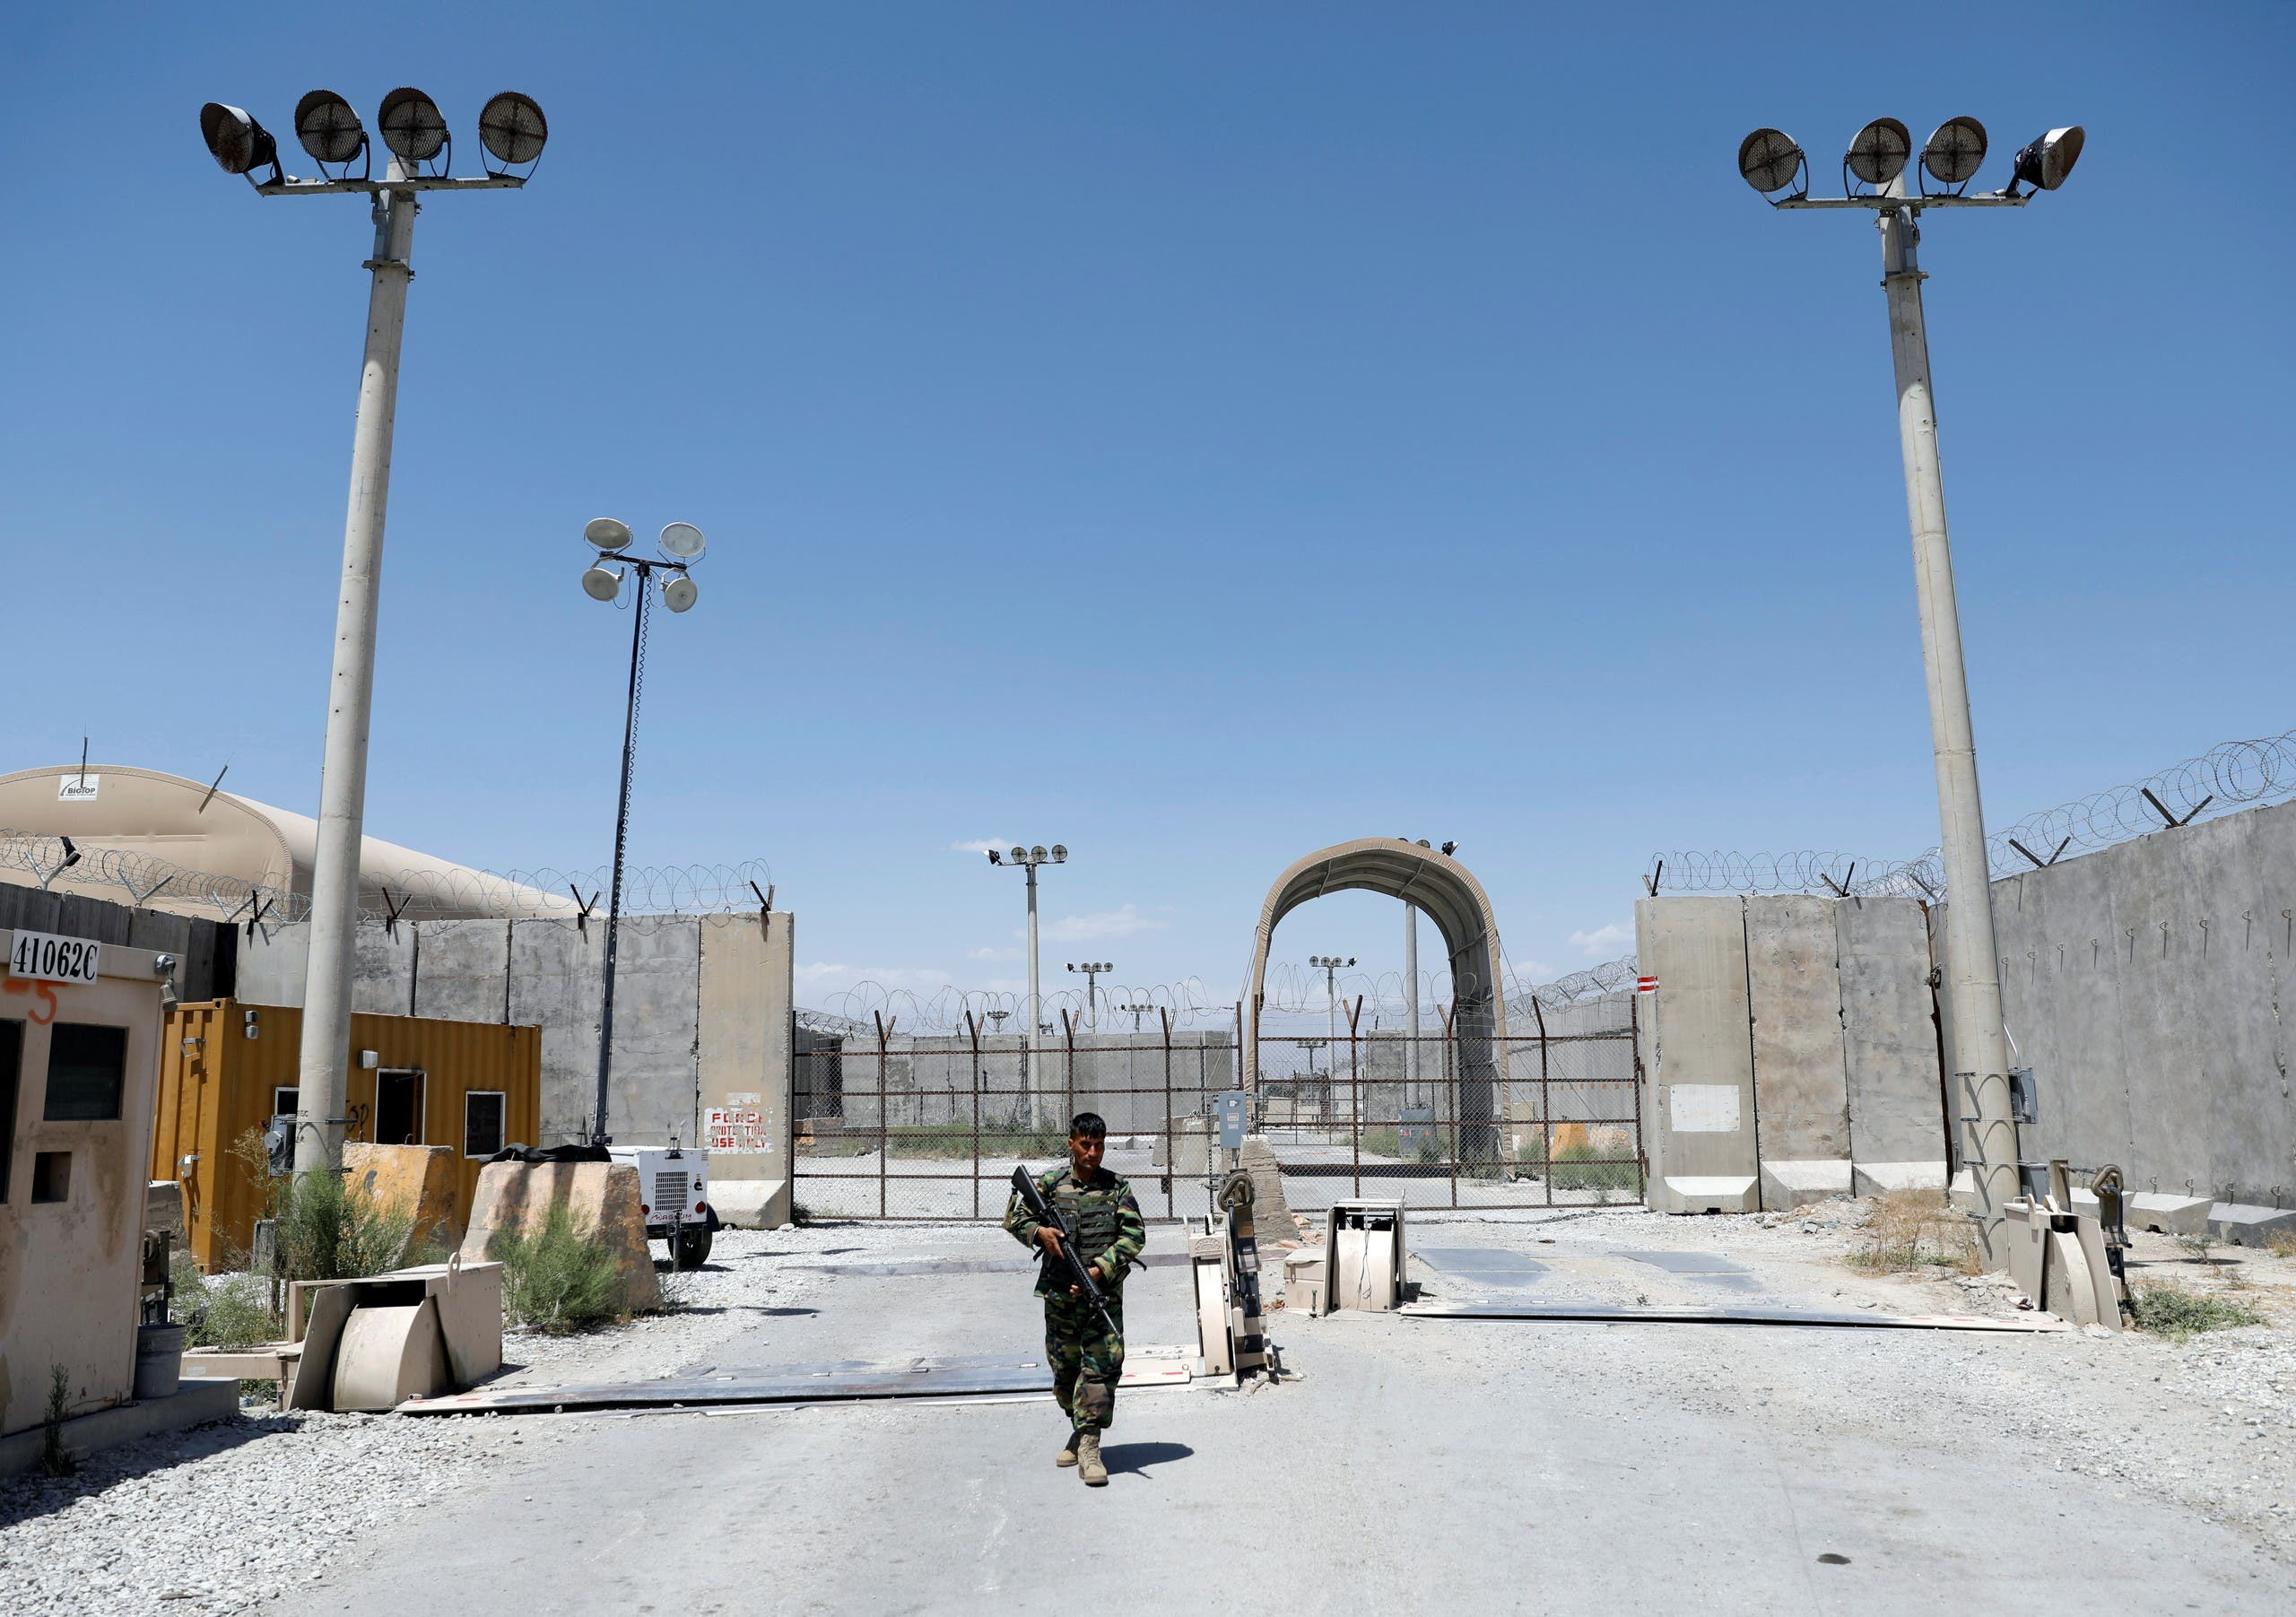 An Afghan National Army soldier stands guard at the gate of Bagram U.S. air base, on the day the last of American troops vacated it, Parwan province, Afghanistan July 2, 2021. (File photo: Reuters)